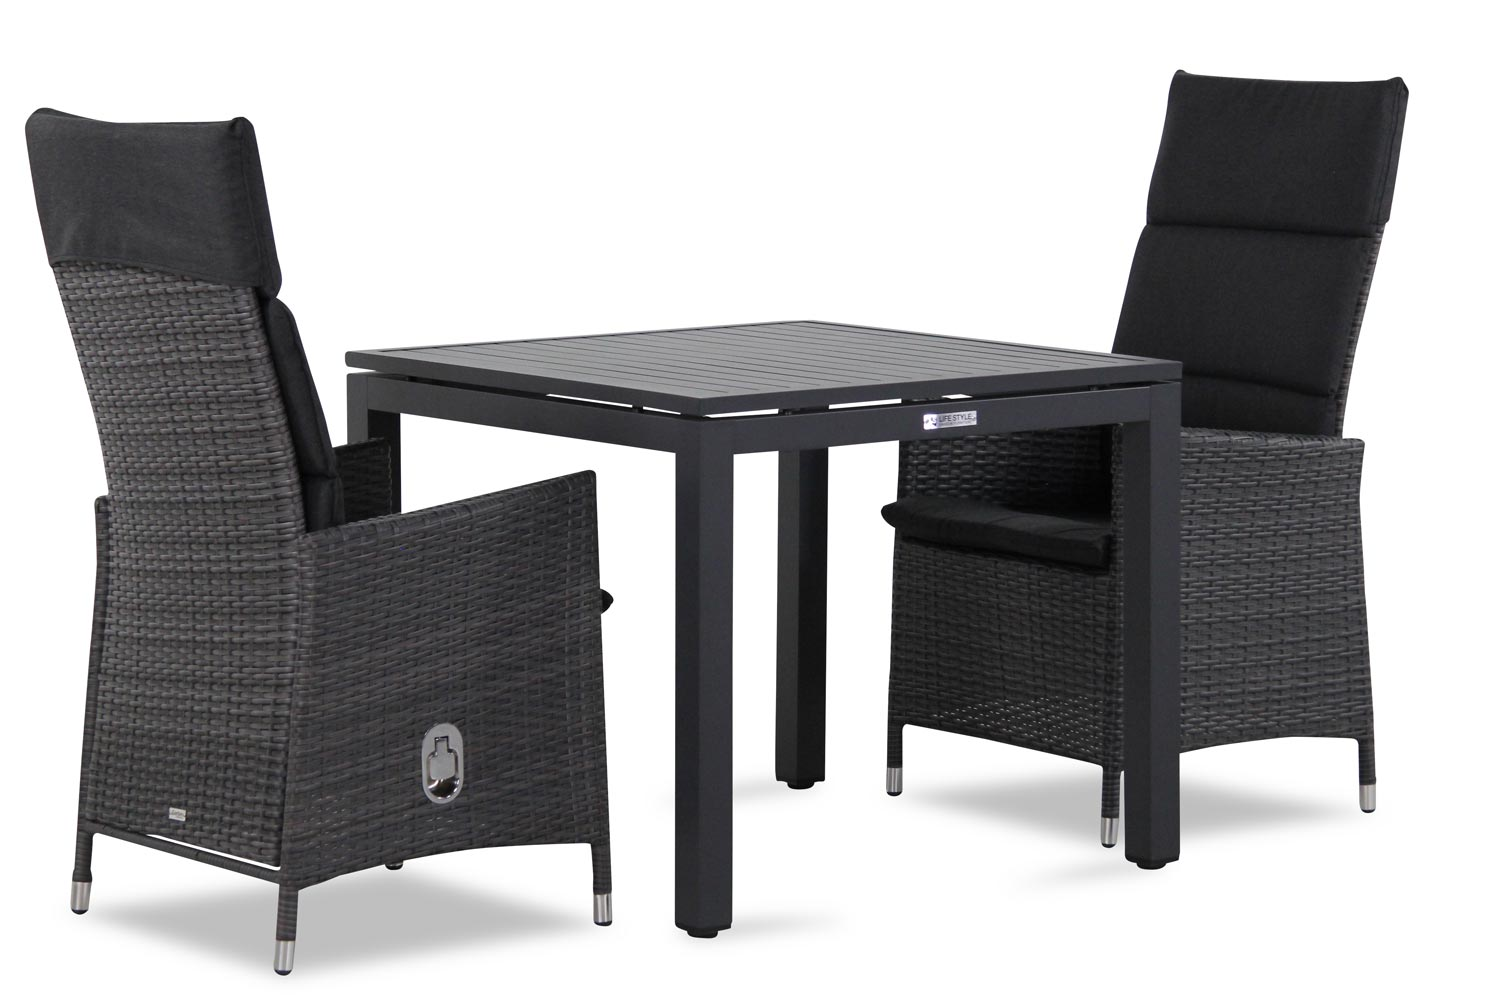 Wicker Garden Collections Denver/Concept 90 cm dining tuinset 3-delig verstelbaar